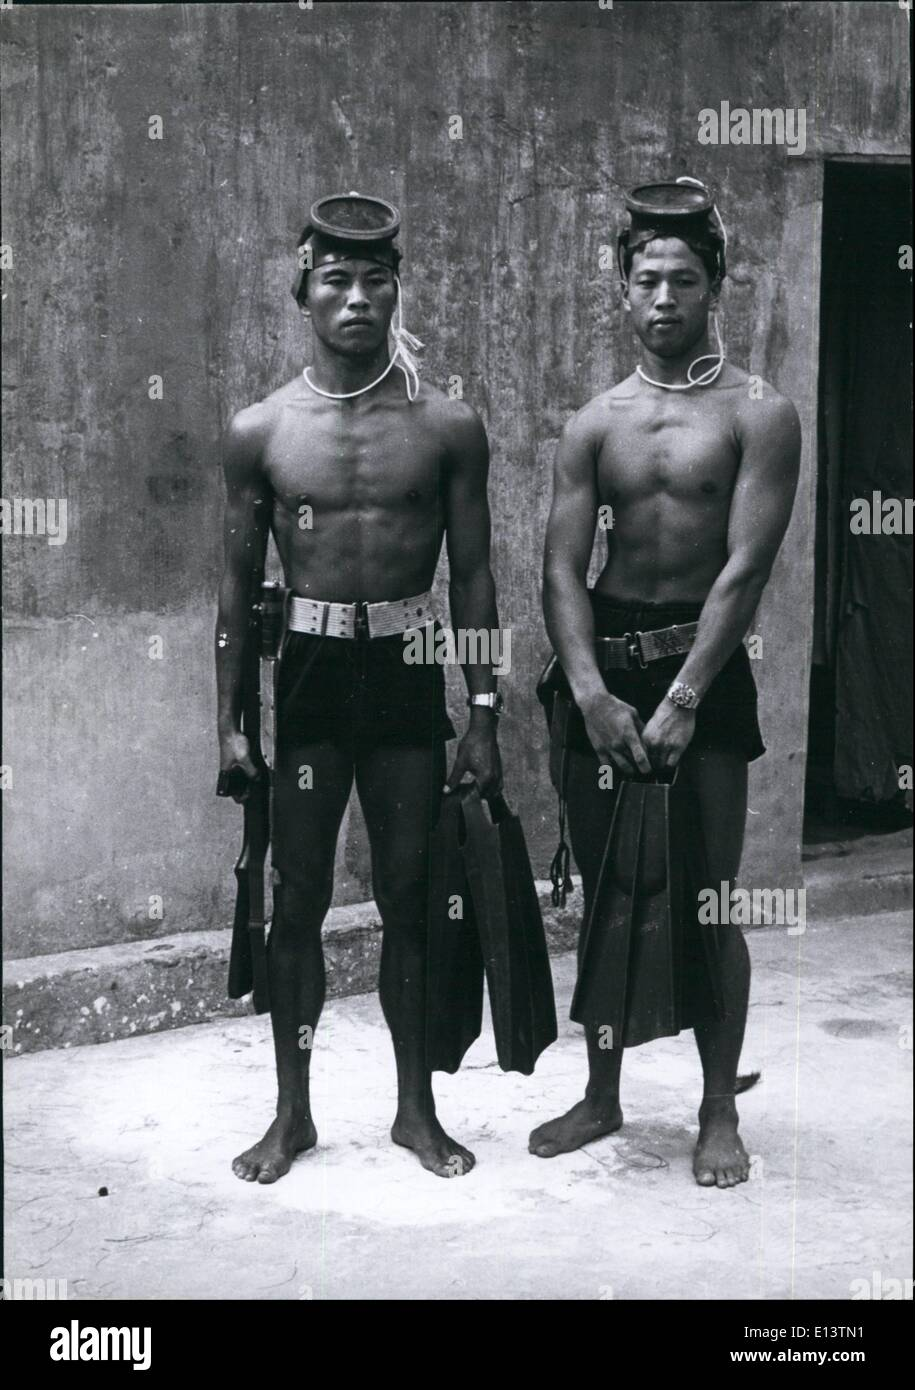 Mar. 27, 2012 - Two typical Chinese Nationalist Frogmen with their assault equipment, carbines, daggers, and pistols. Note the waterproof chronometers for syncronizing the time of their operations. - Stock Image